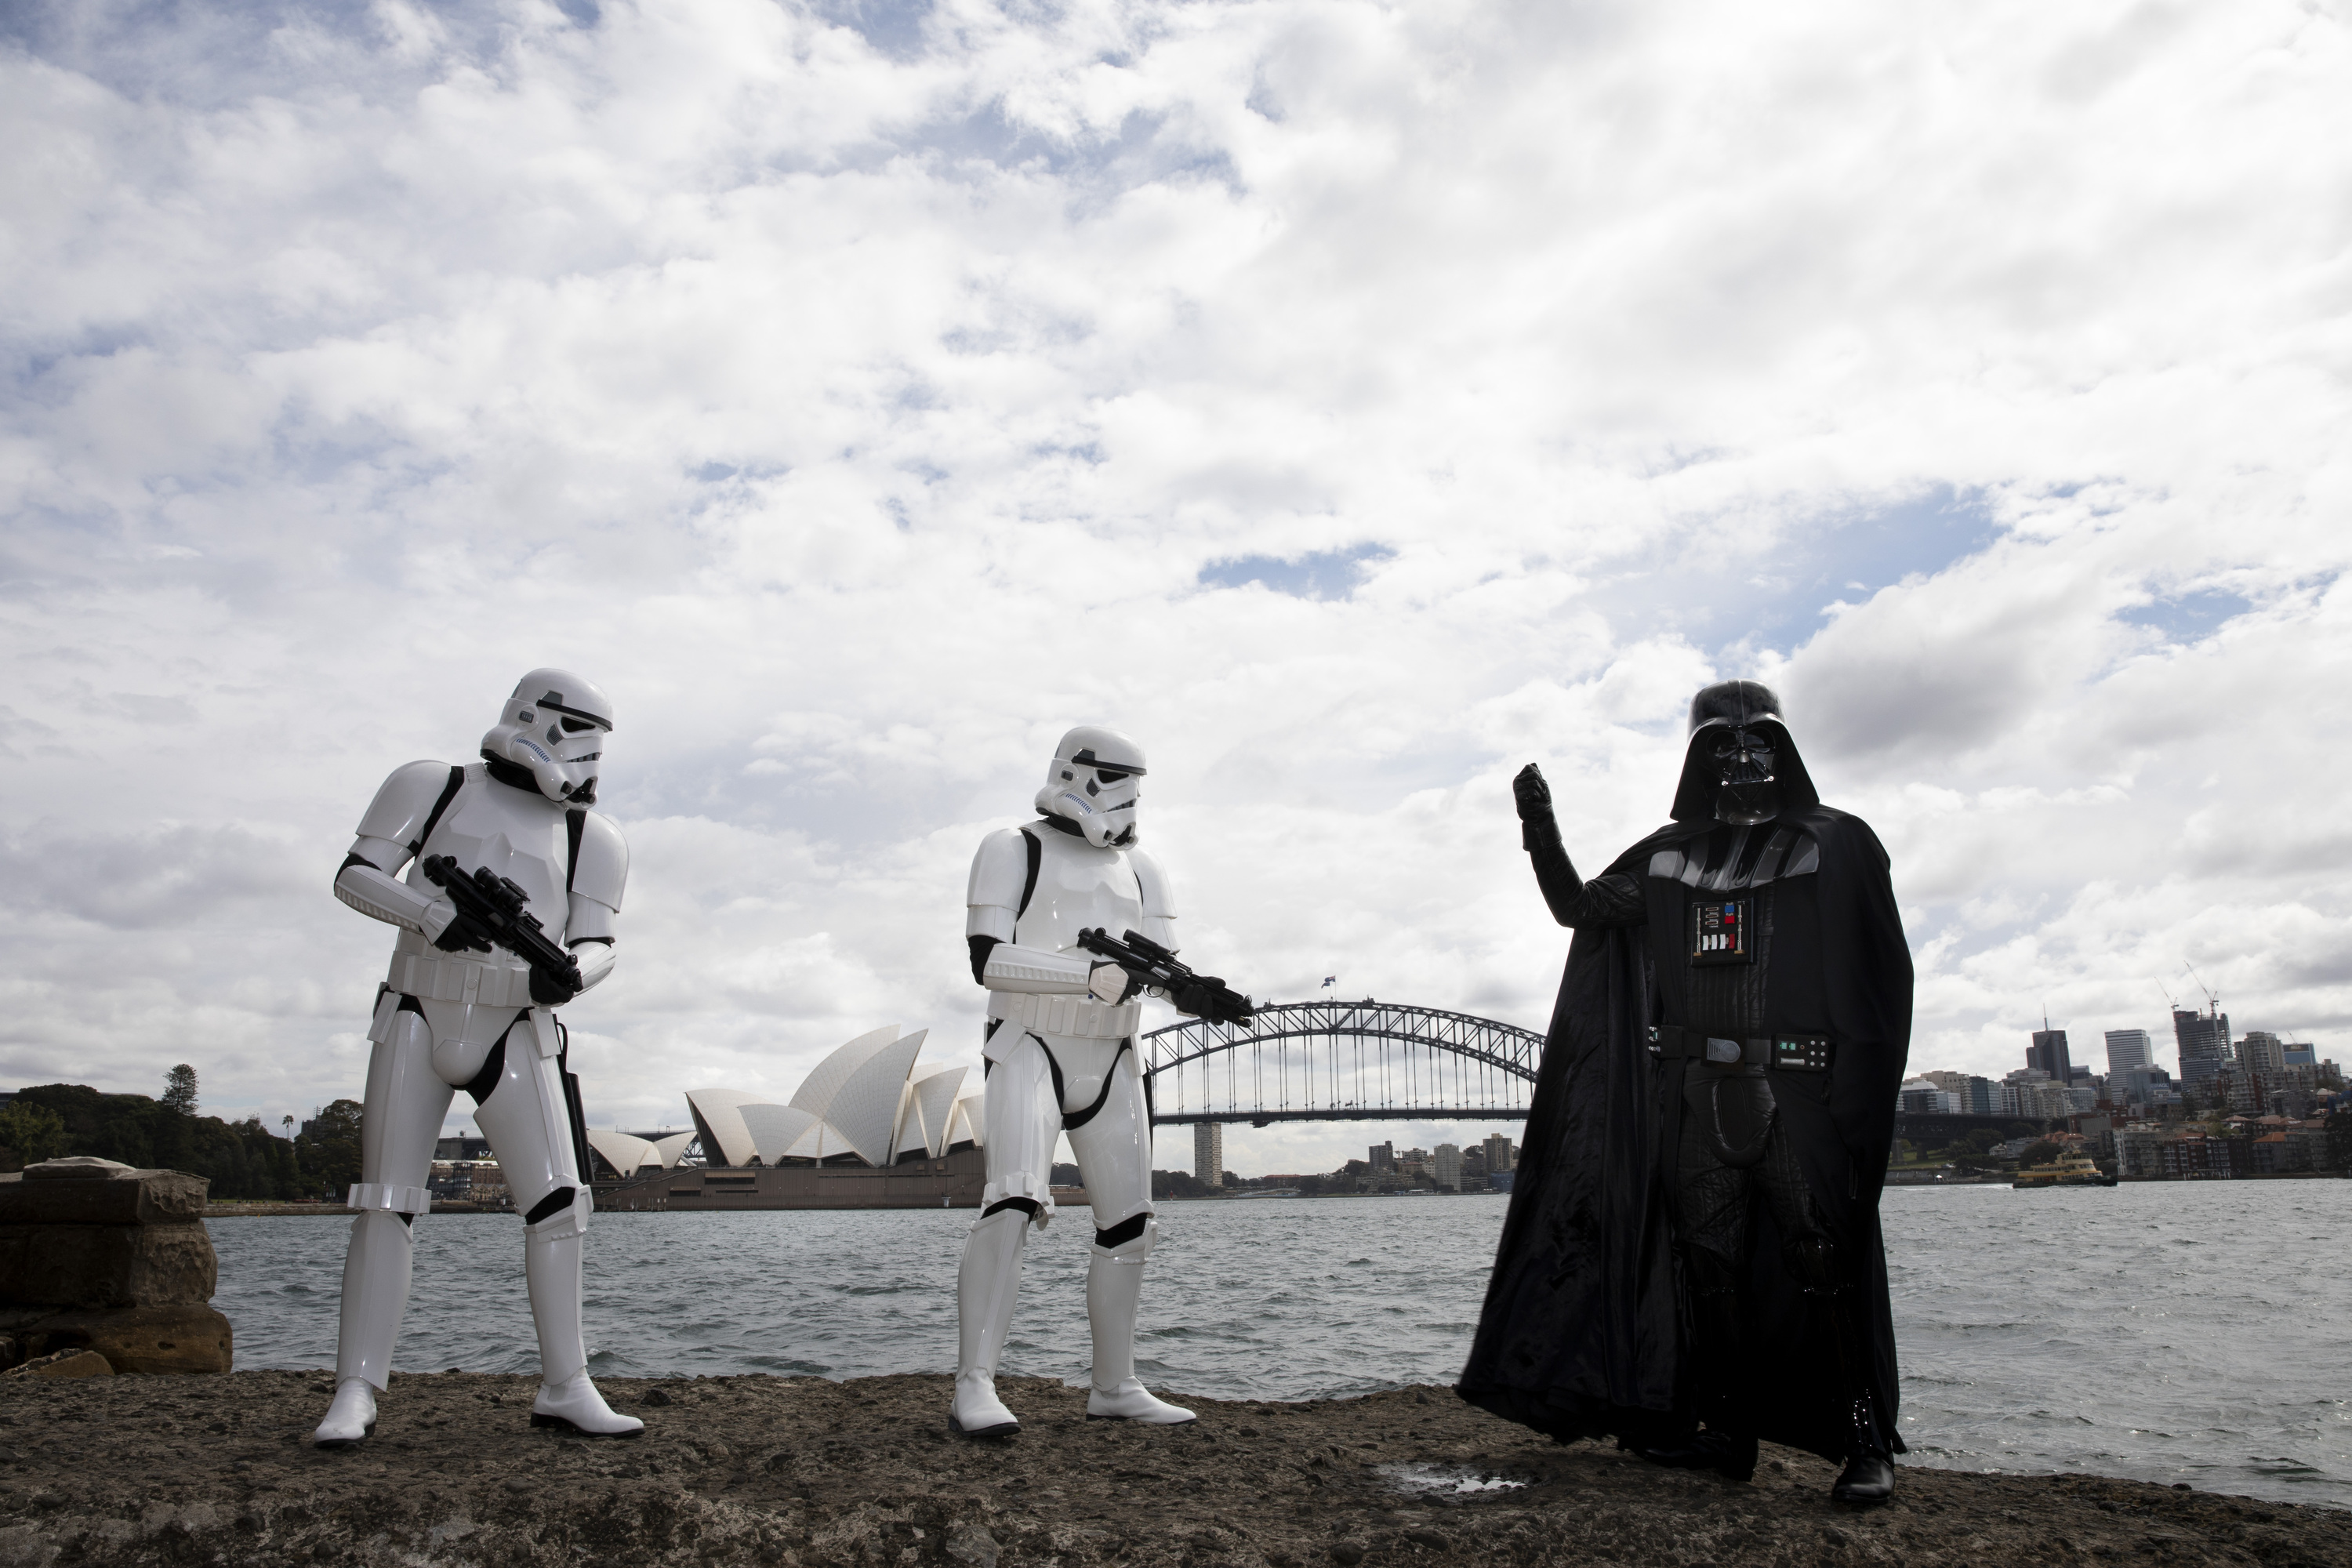 Characters standing in front of the Sydney Opera House and Harbour Bridge.